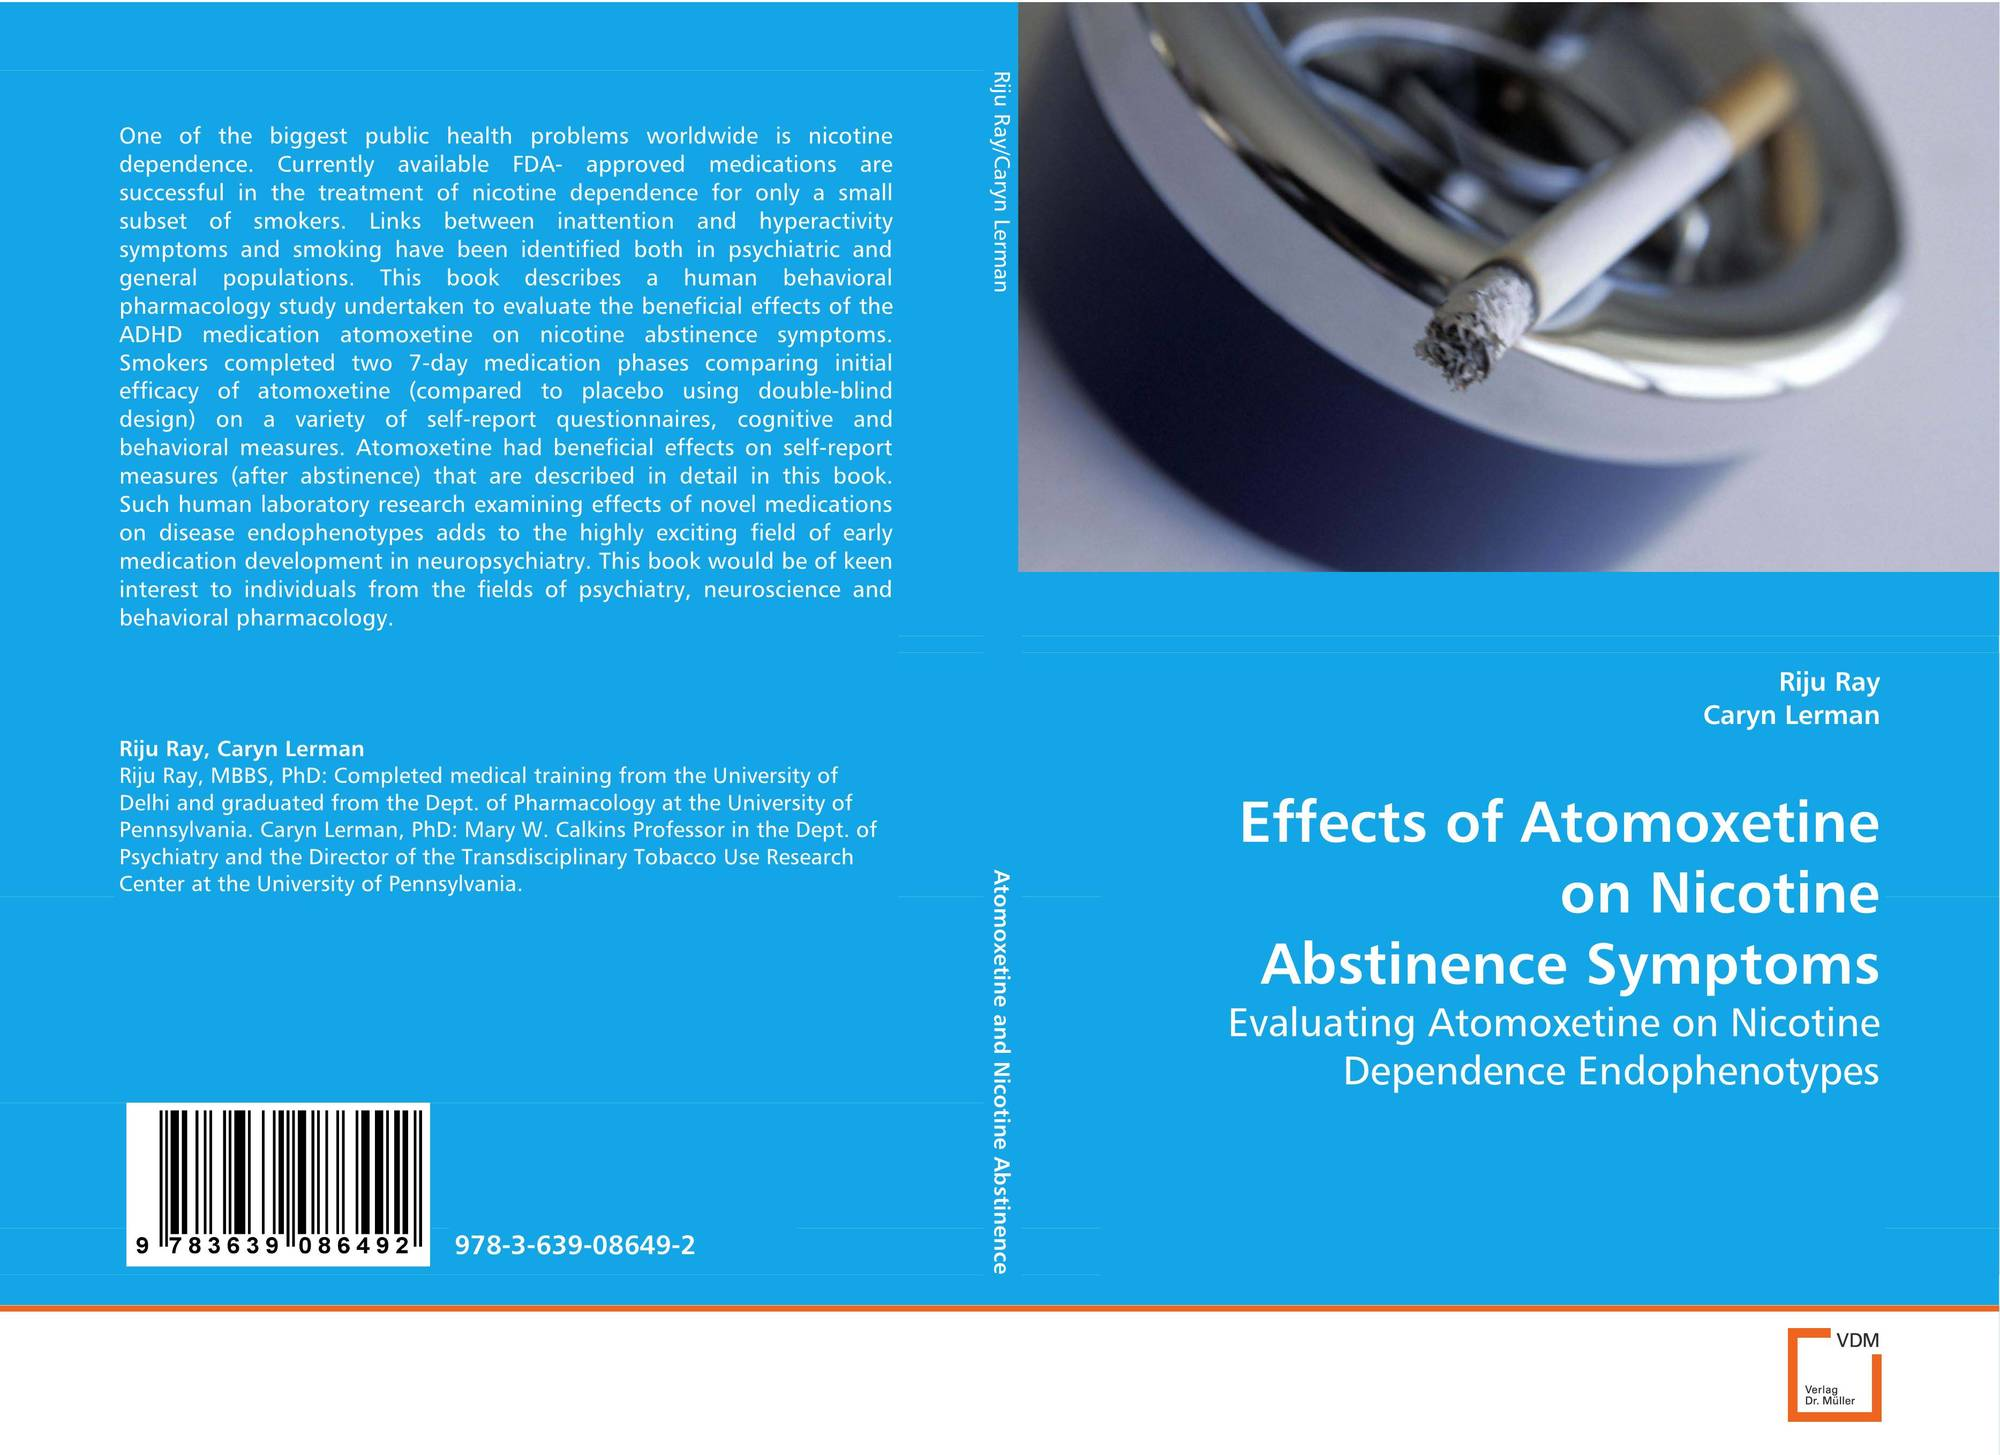 Effects of Atomoxetine on Nicotine AbstinenceSymptoms, 978-3